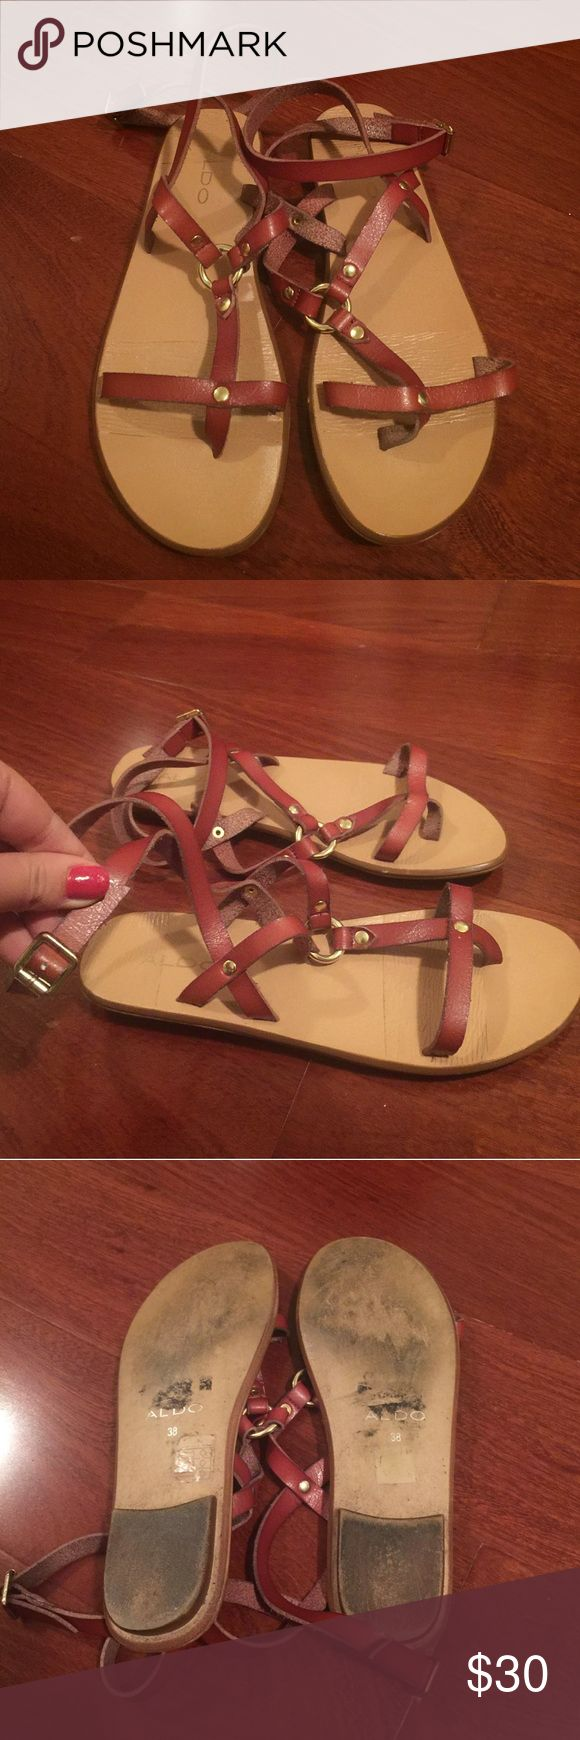 Aldo Ankle Wrap Sandals Pre-Owned with noticeable wear on bottom. Brown ankle wrap sandals with gold hardware by Aldo. Size 38 / 7.5. Aldo Shoes Sandals